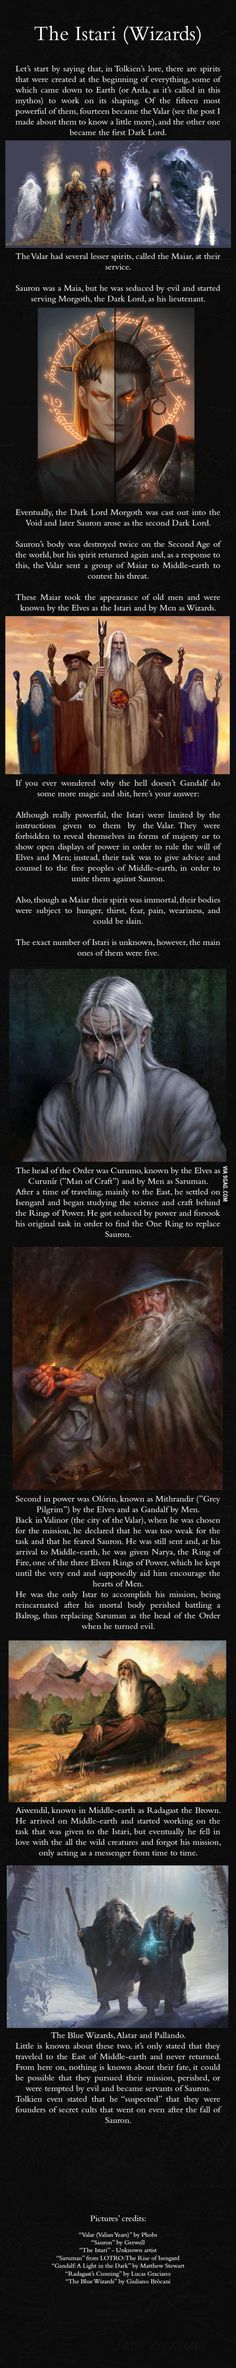 The Wizards of Middle-earth - J.R.R. Tolkien Mythology